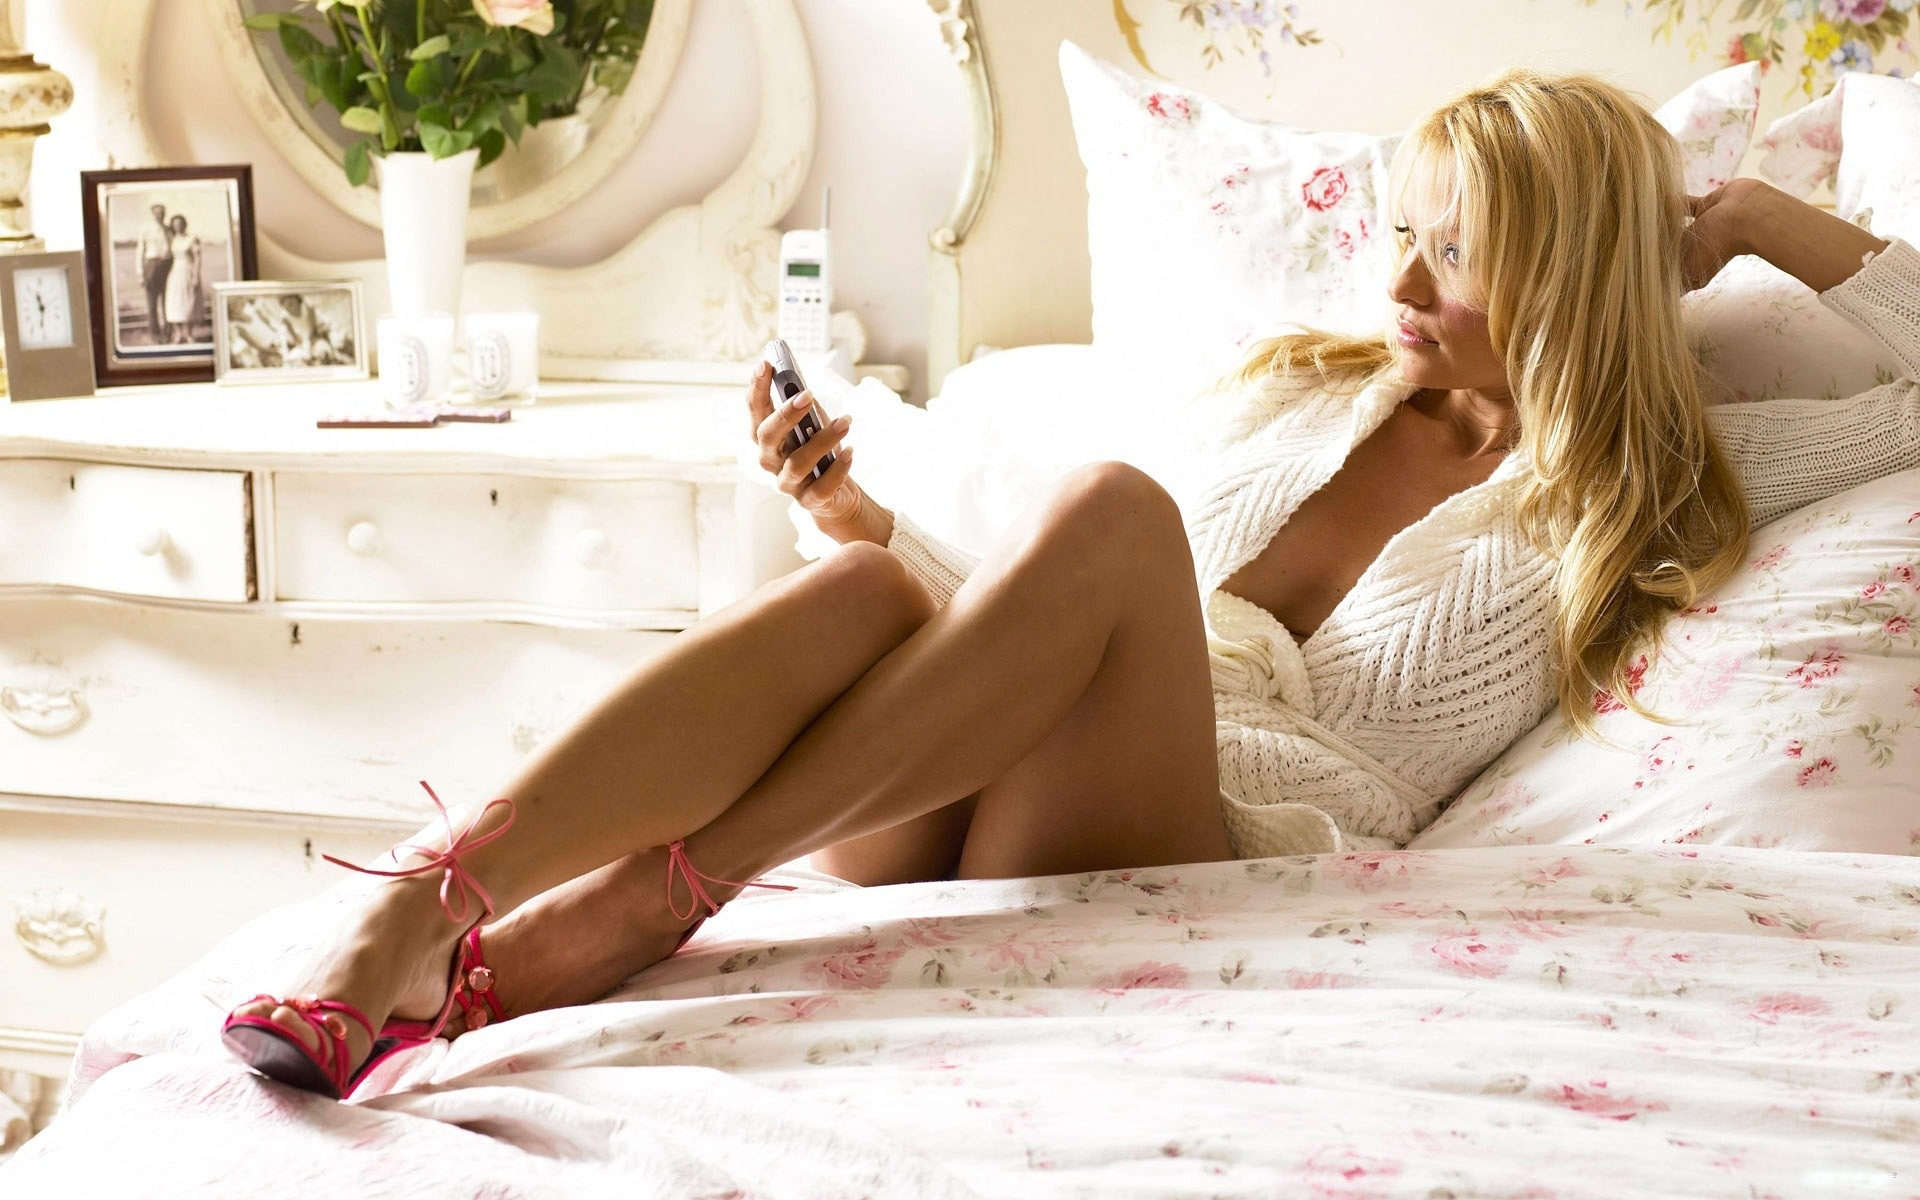 Girl On Phone On Bed